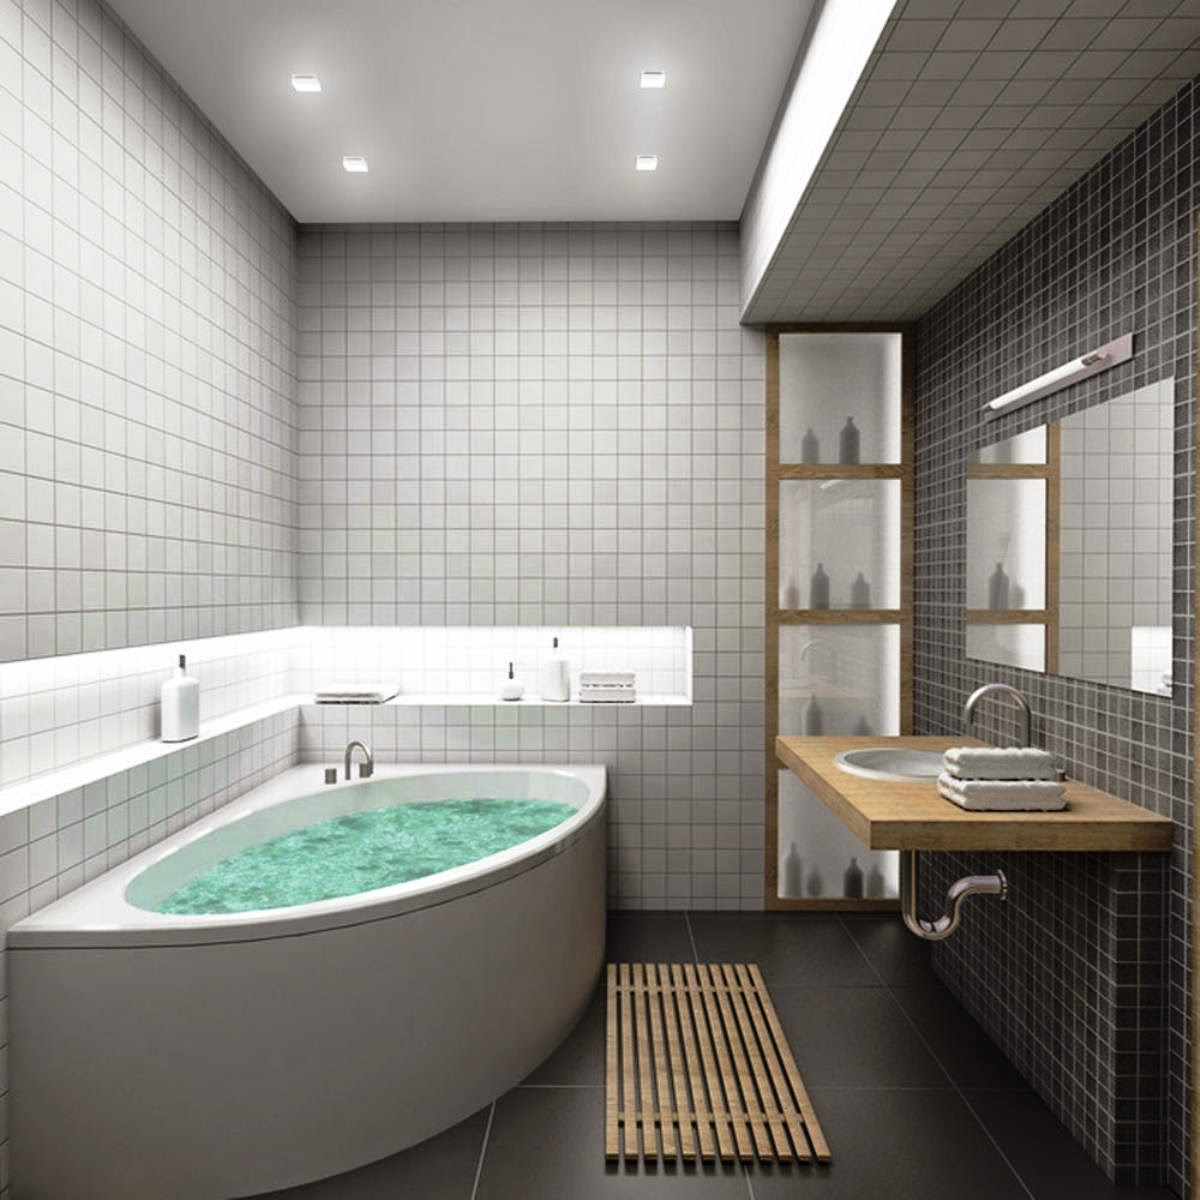 Decor Your Bathroom With Modern And Luxury Bathroom Ideas - House ...